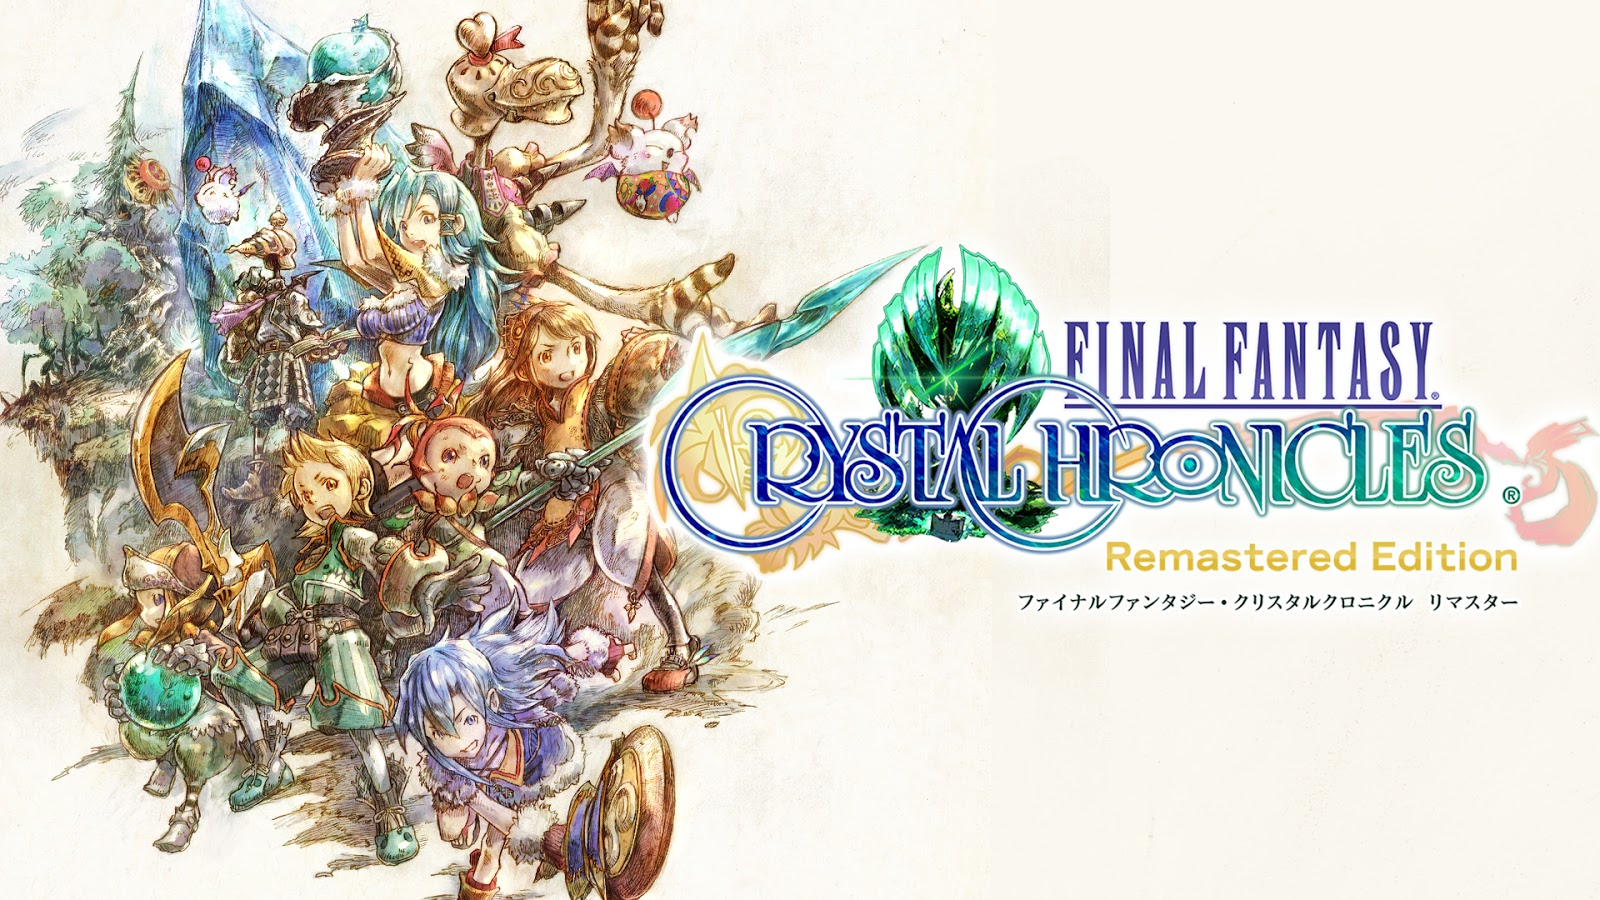 [Review] Final Fantasy Crystal Chronicles Remastered Edition para PS4